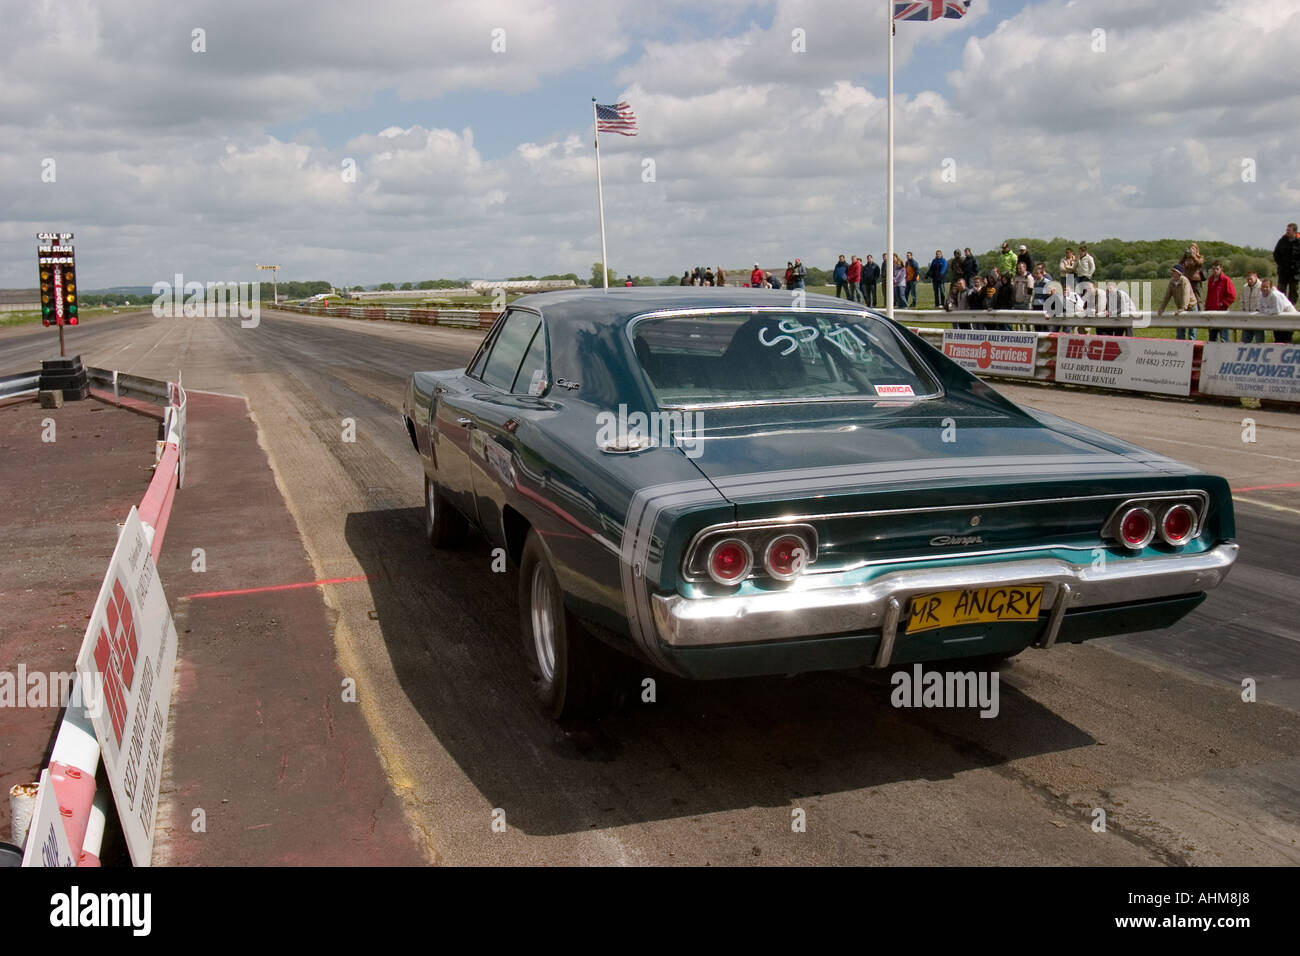 Heavily modified American muscle car on start line at drag race ...